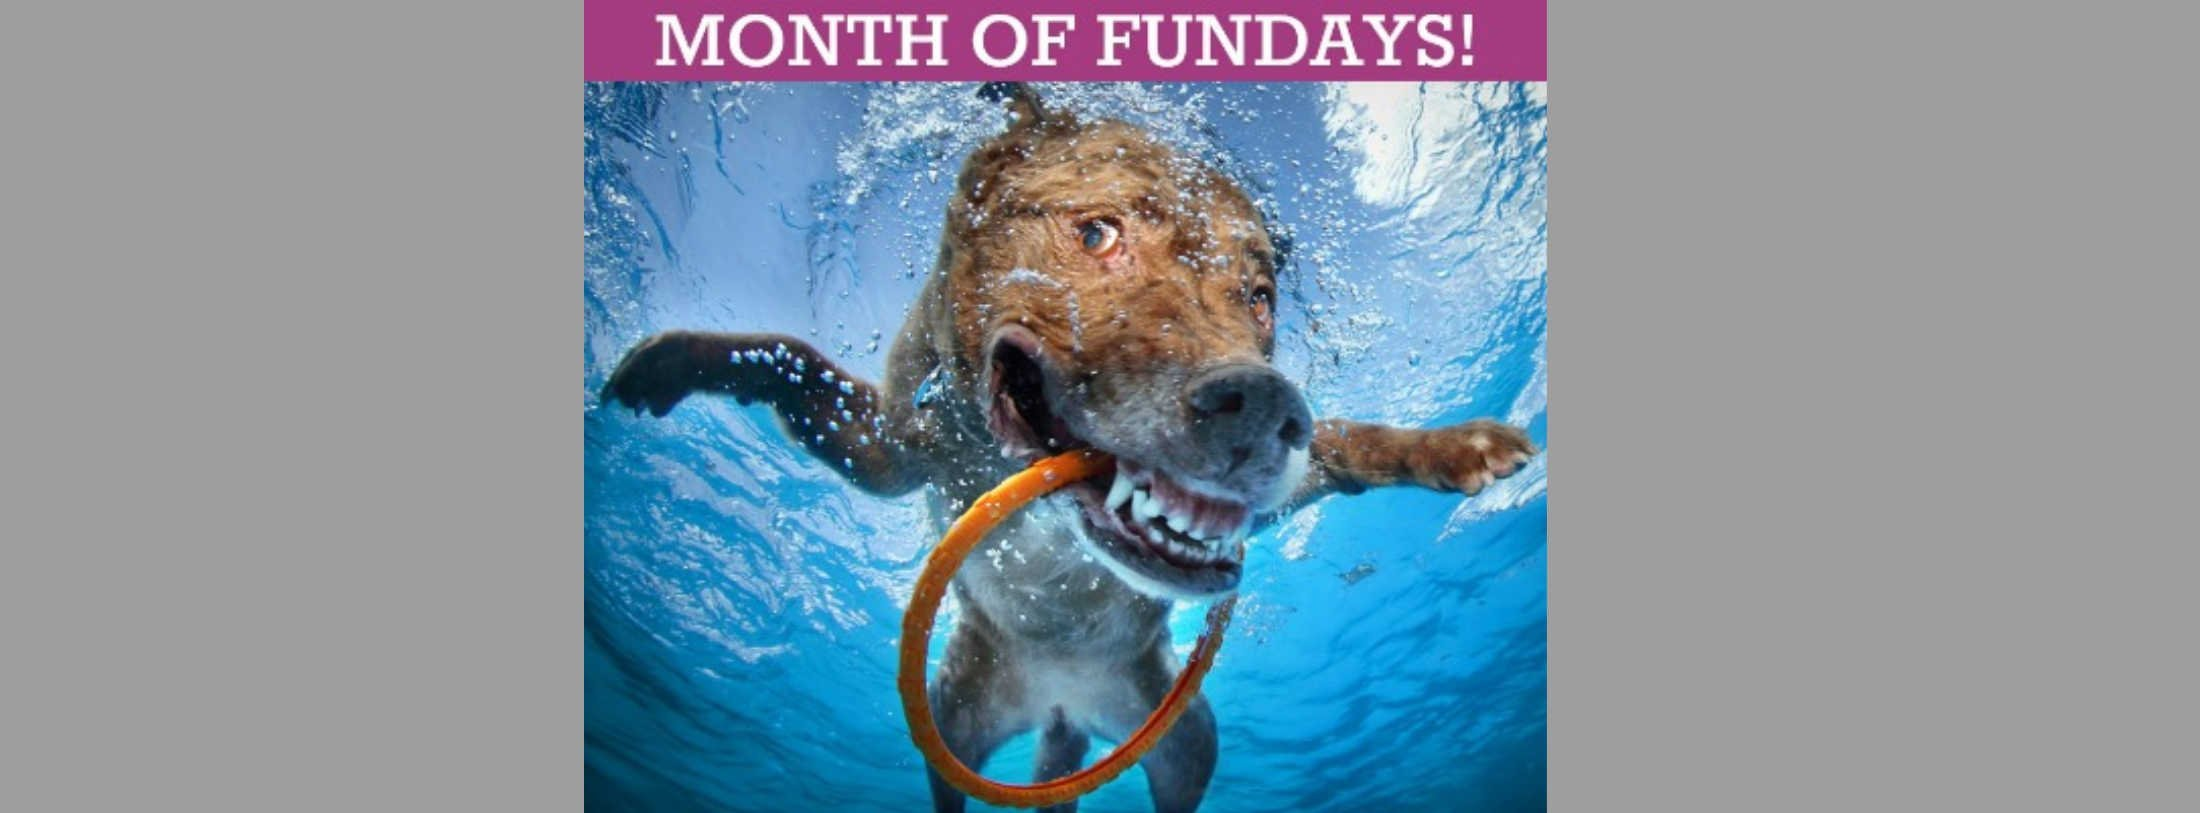 MONTH OF FUNDAYS October 2019: Good times & fun affairs on the Delmarva Peninsula